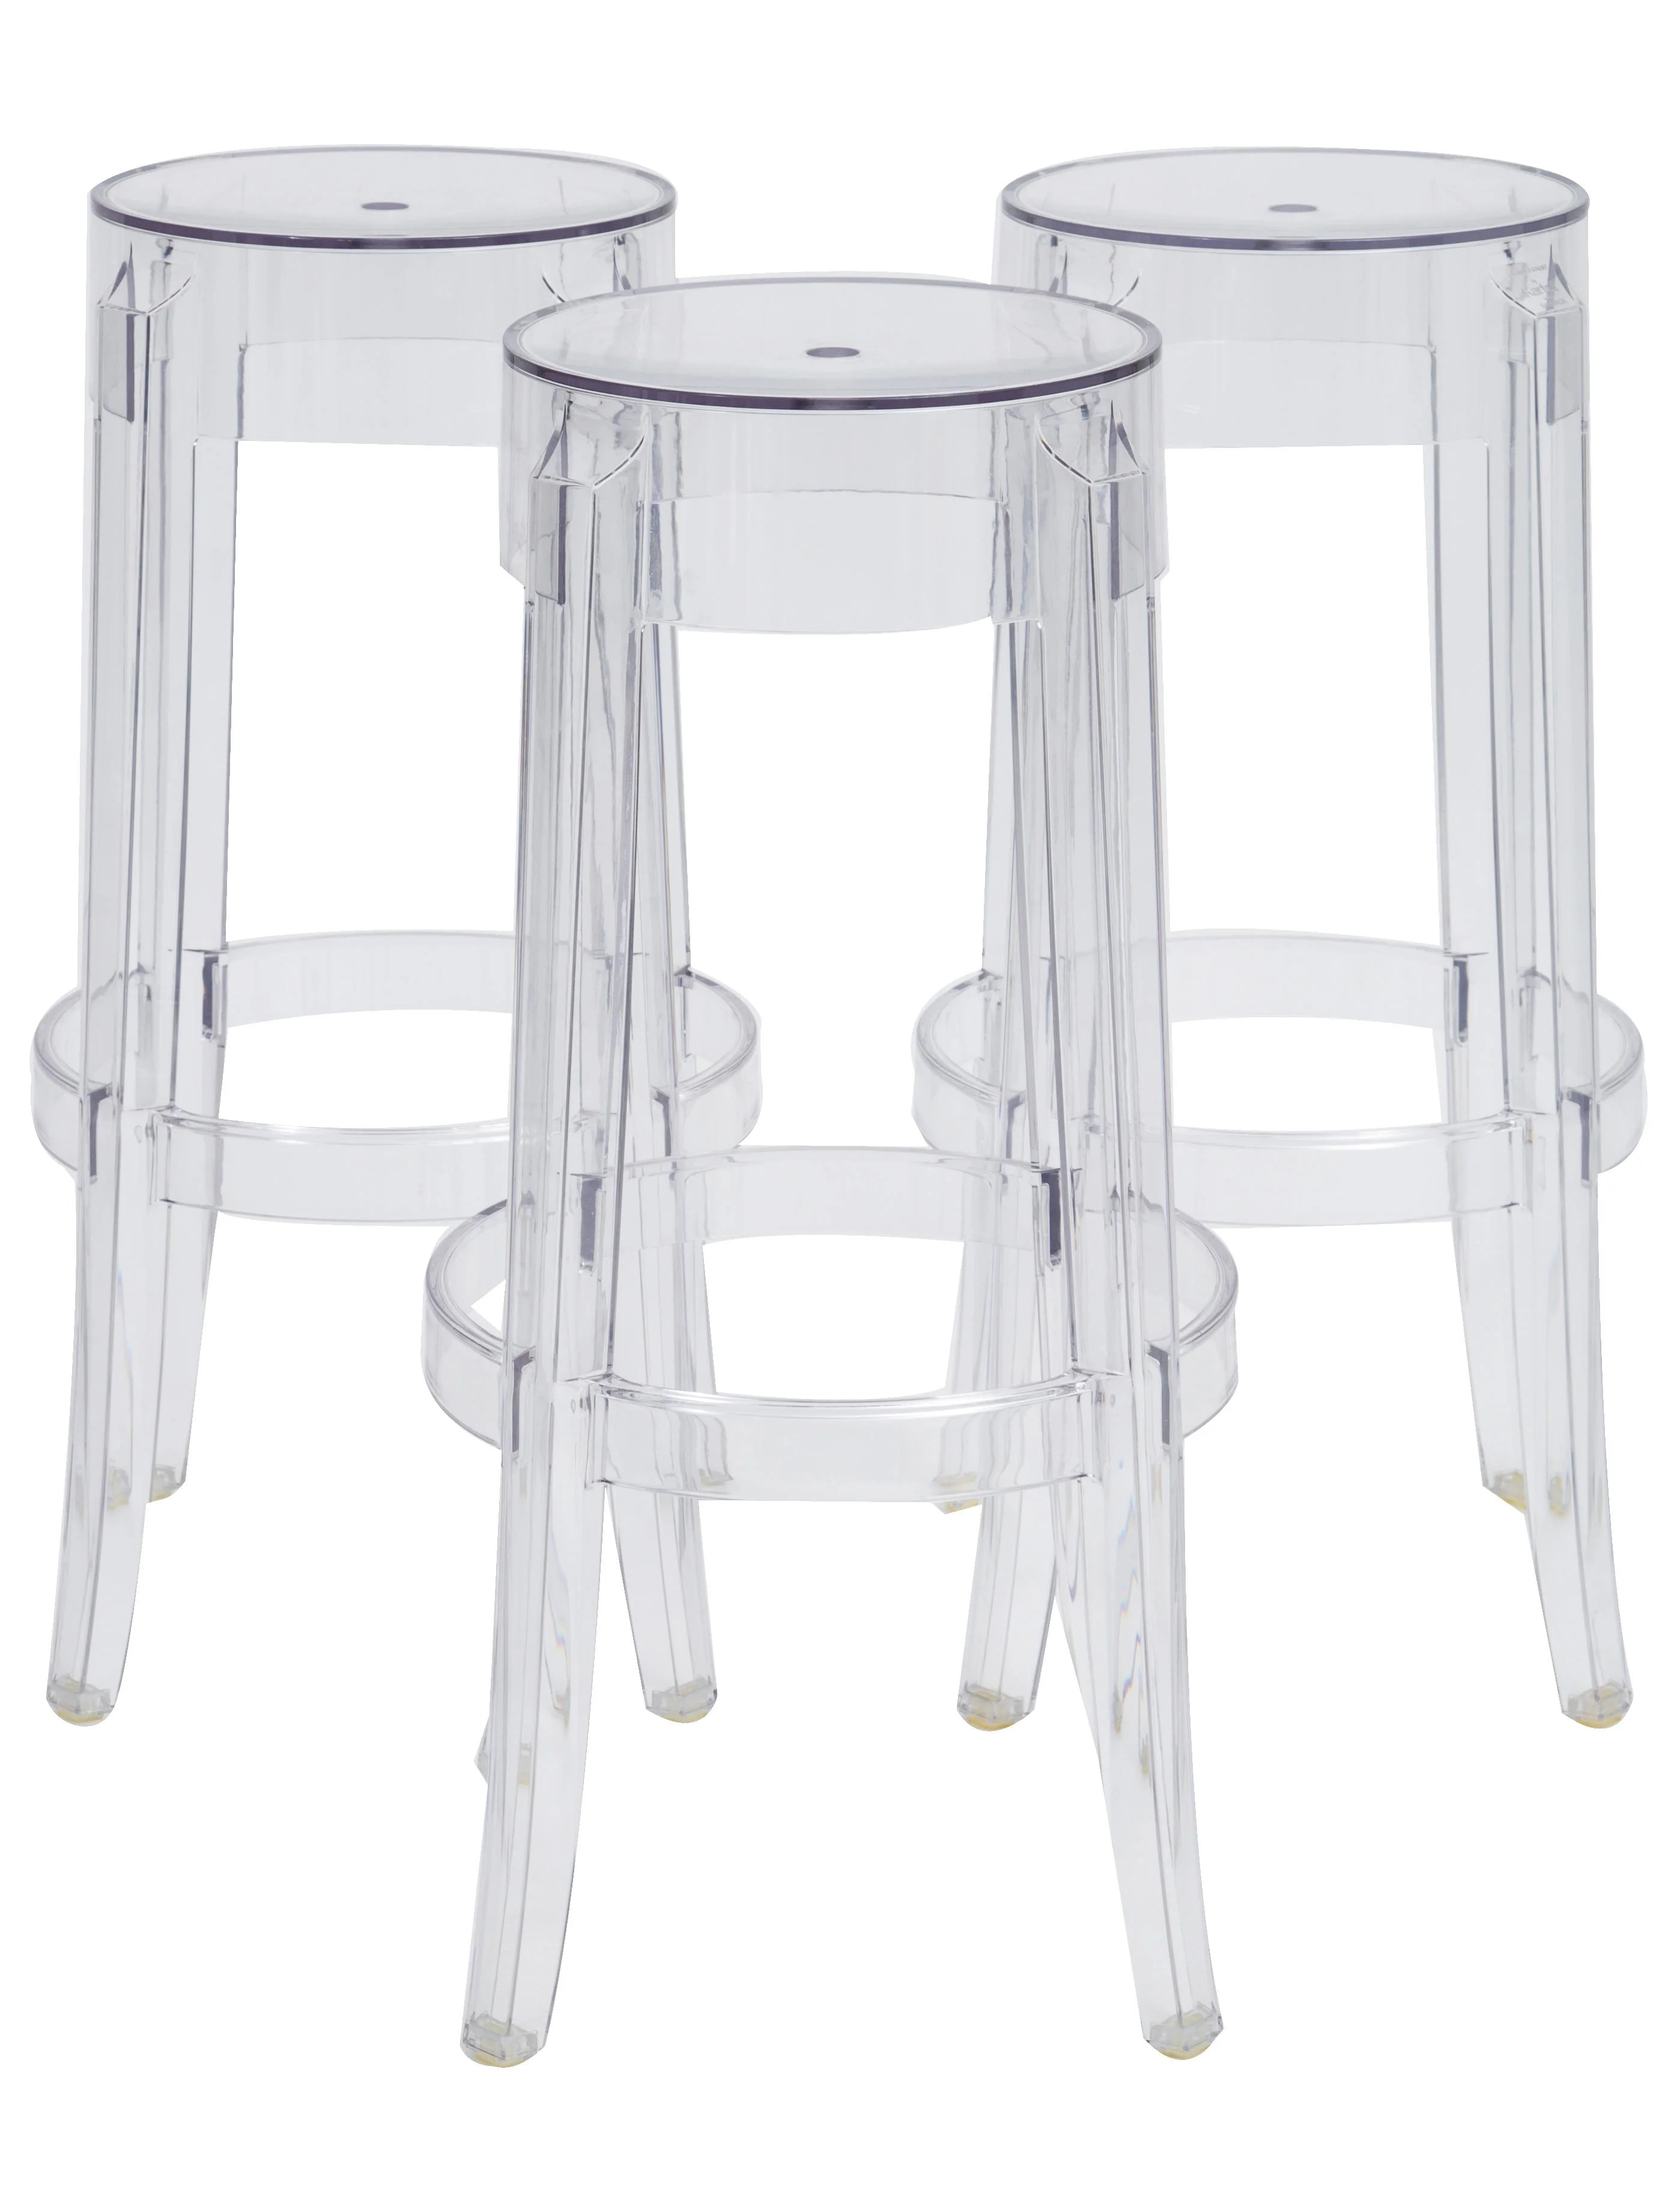 ghost chair bar stool recliner new zealand kartell charles stools furniture ktl20102